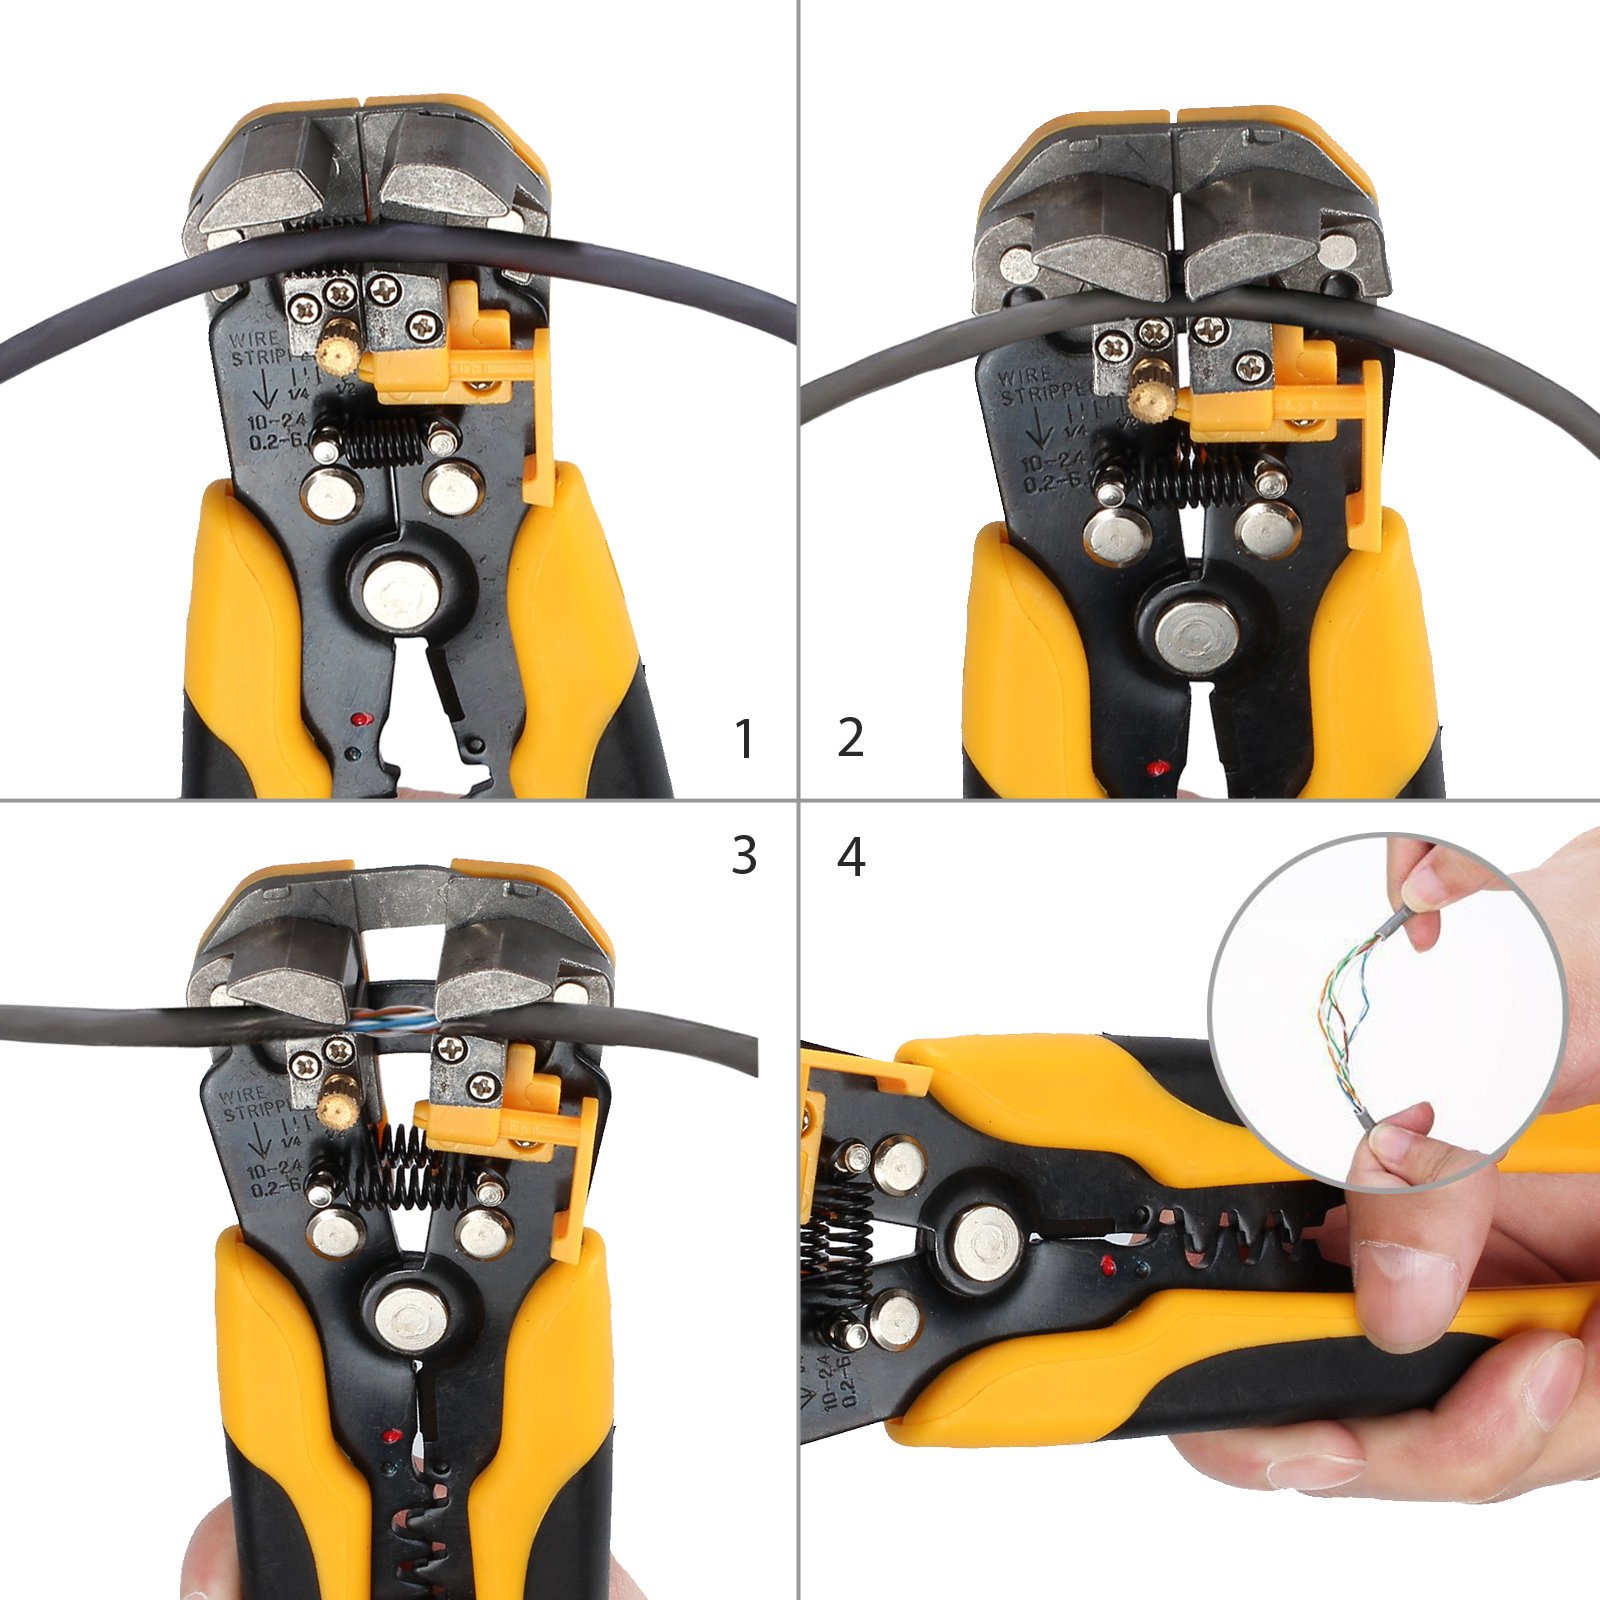 Proxima Direct Cable Crimper Wire Stripping Plier Tool Set Automatic Wire Stripper Crimper Cutter Cable Stripping Cutting Crimping Multifunctional Pliers 0.2-6 mm ² by Proxima Direct (Image #4)